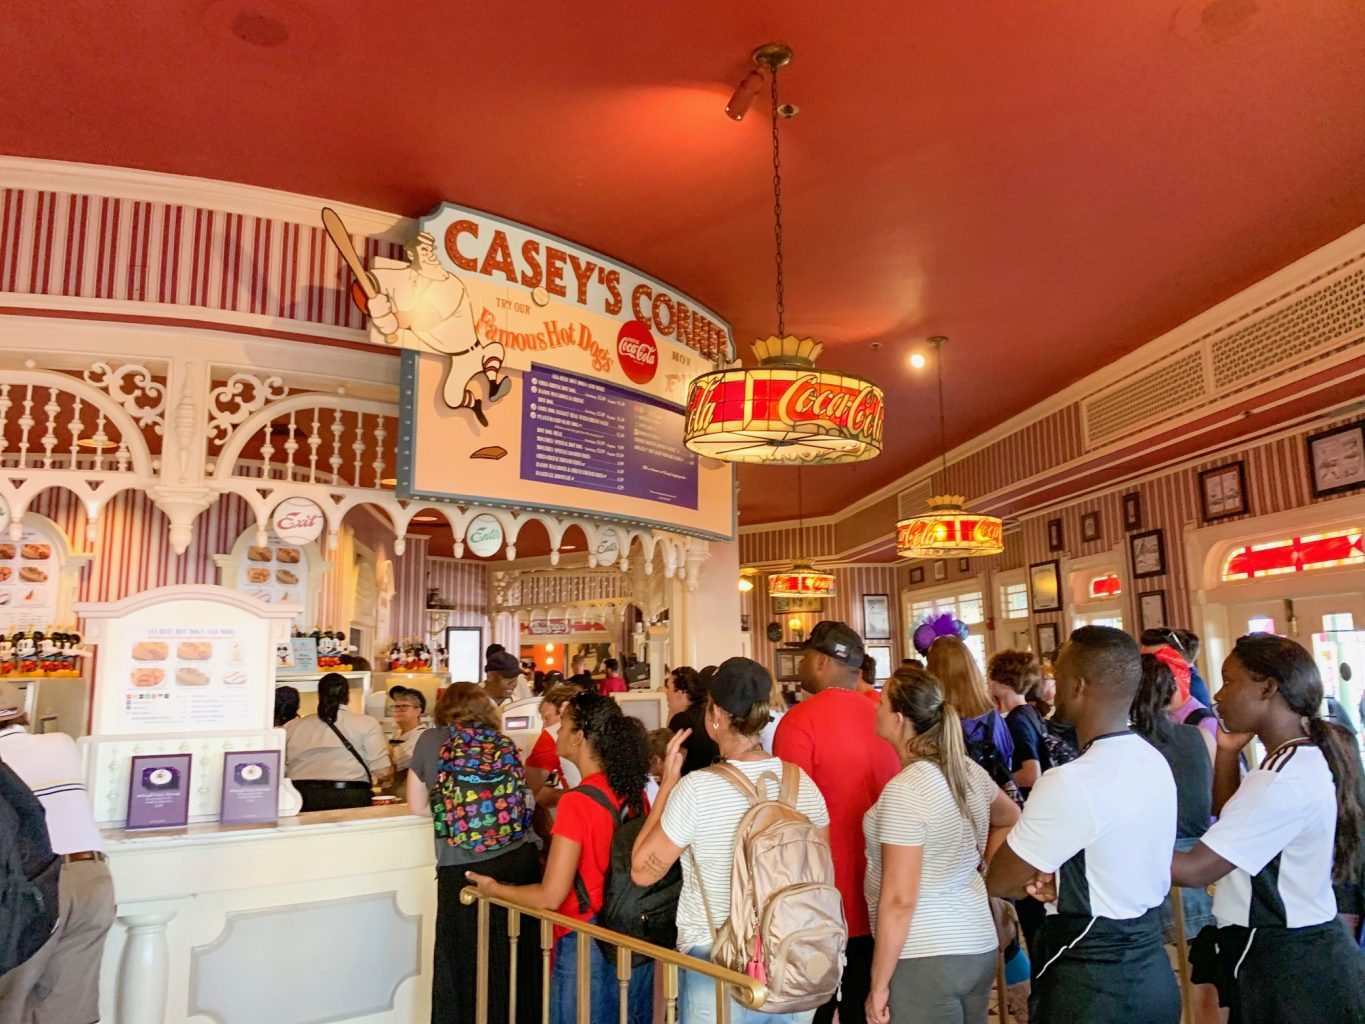 A long queue for one of the most iconic and best Magic Kingdom quick service restaurants, Casey's Corner